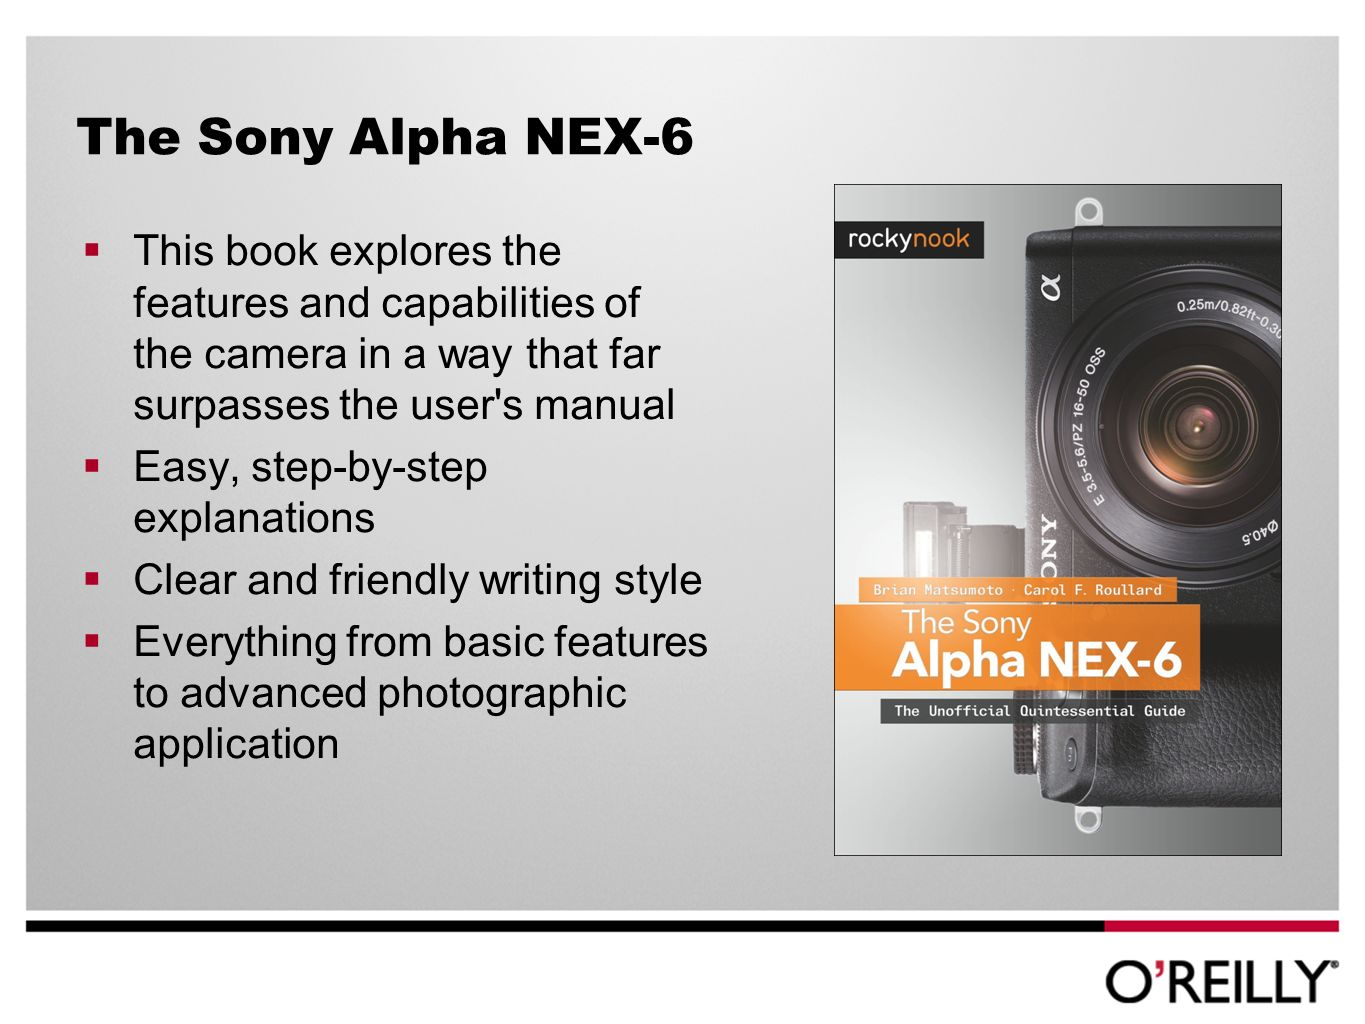 The Sony Alpha NEX-6 This book explores the features and capabilities of the camera in a way that far surpasses the user s manual Easy, step-by-step explanations Clear and friendly writing style Everything from basic features to advanced photographic application